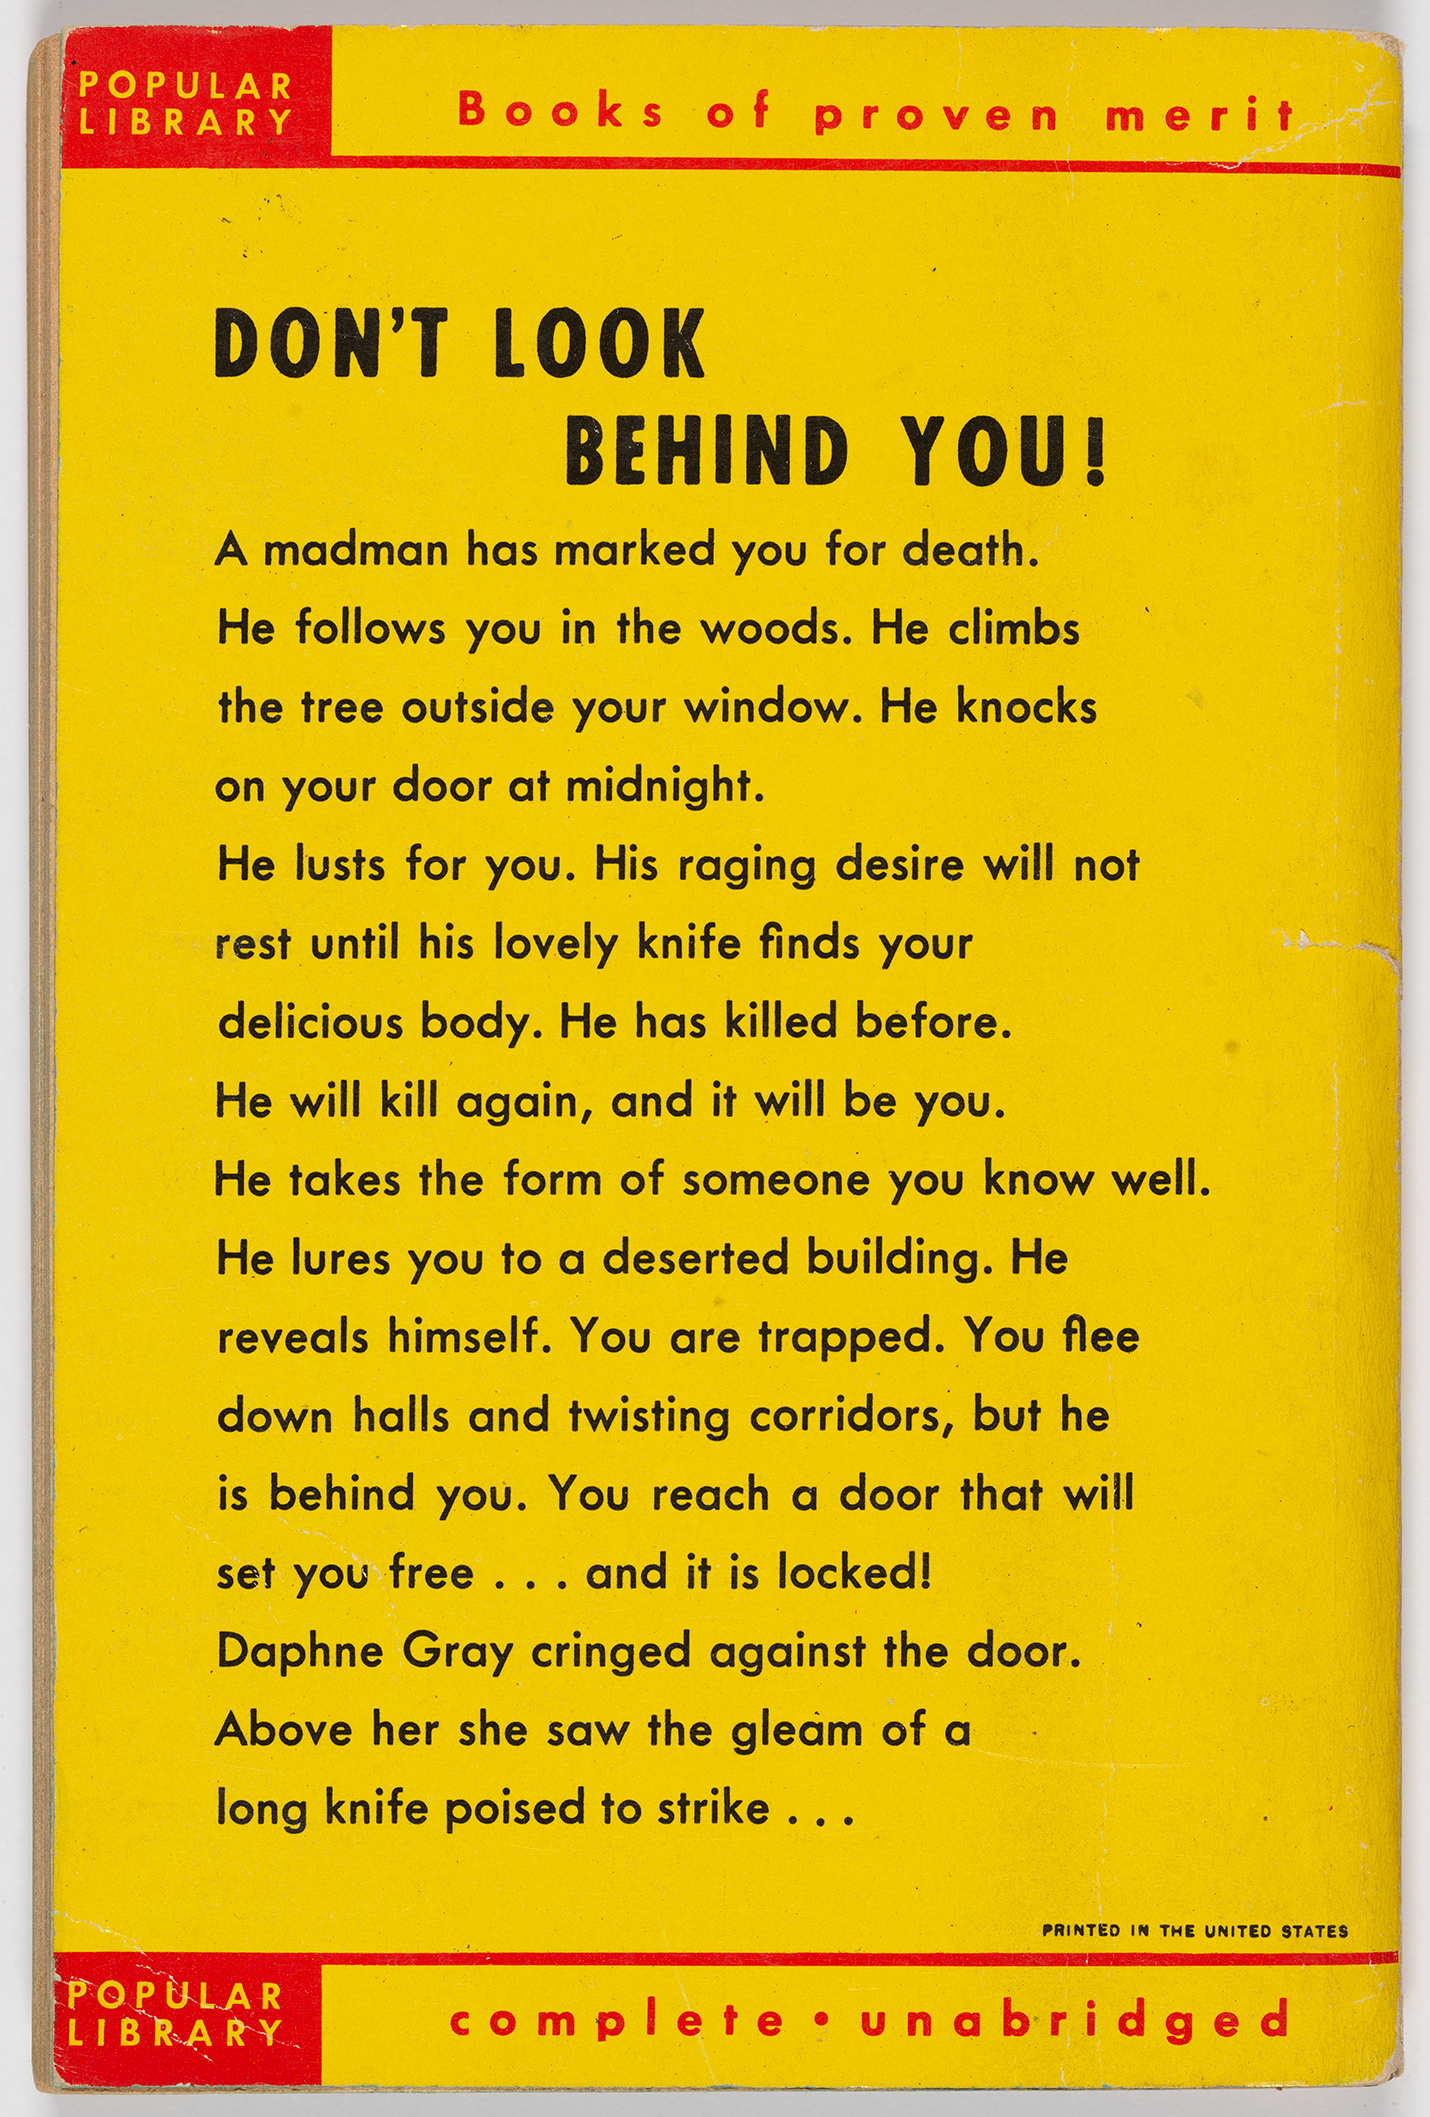 "The back cover includes the logo for Popular Library, which publishes ""Books of proven merit."" The book description is a chilling second person narration. ""A madman has marked you for death,"" it begins. ""He follows you in the woods. He climbs the tree outside your window. He knocks on your door at midnight. He lusts for you. His raging desire will not rest until his lovely knife finds your delicious body. …"""